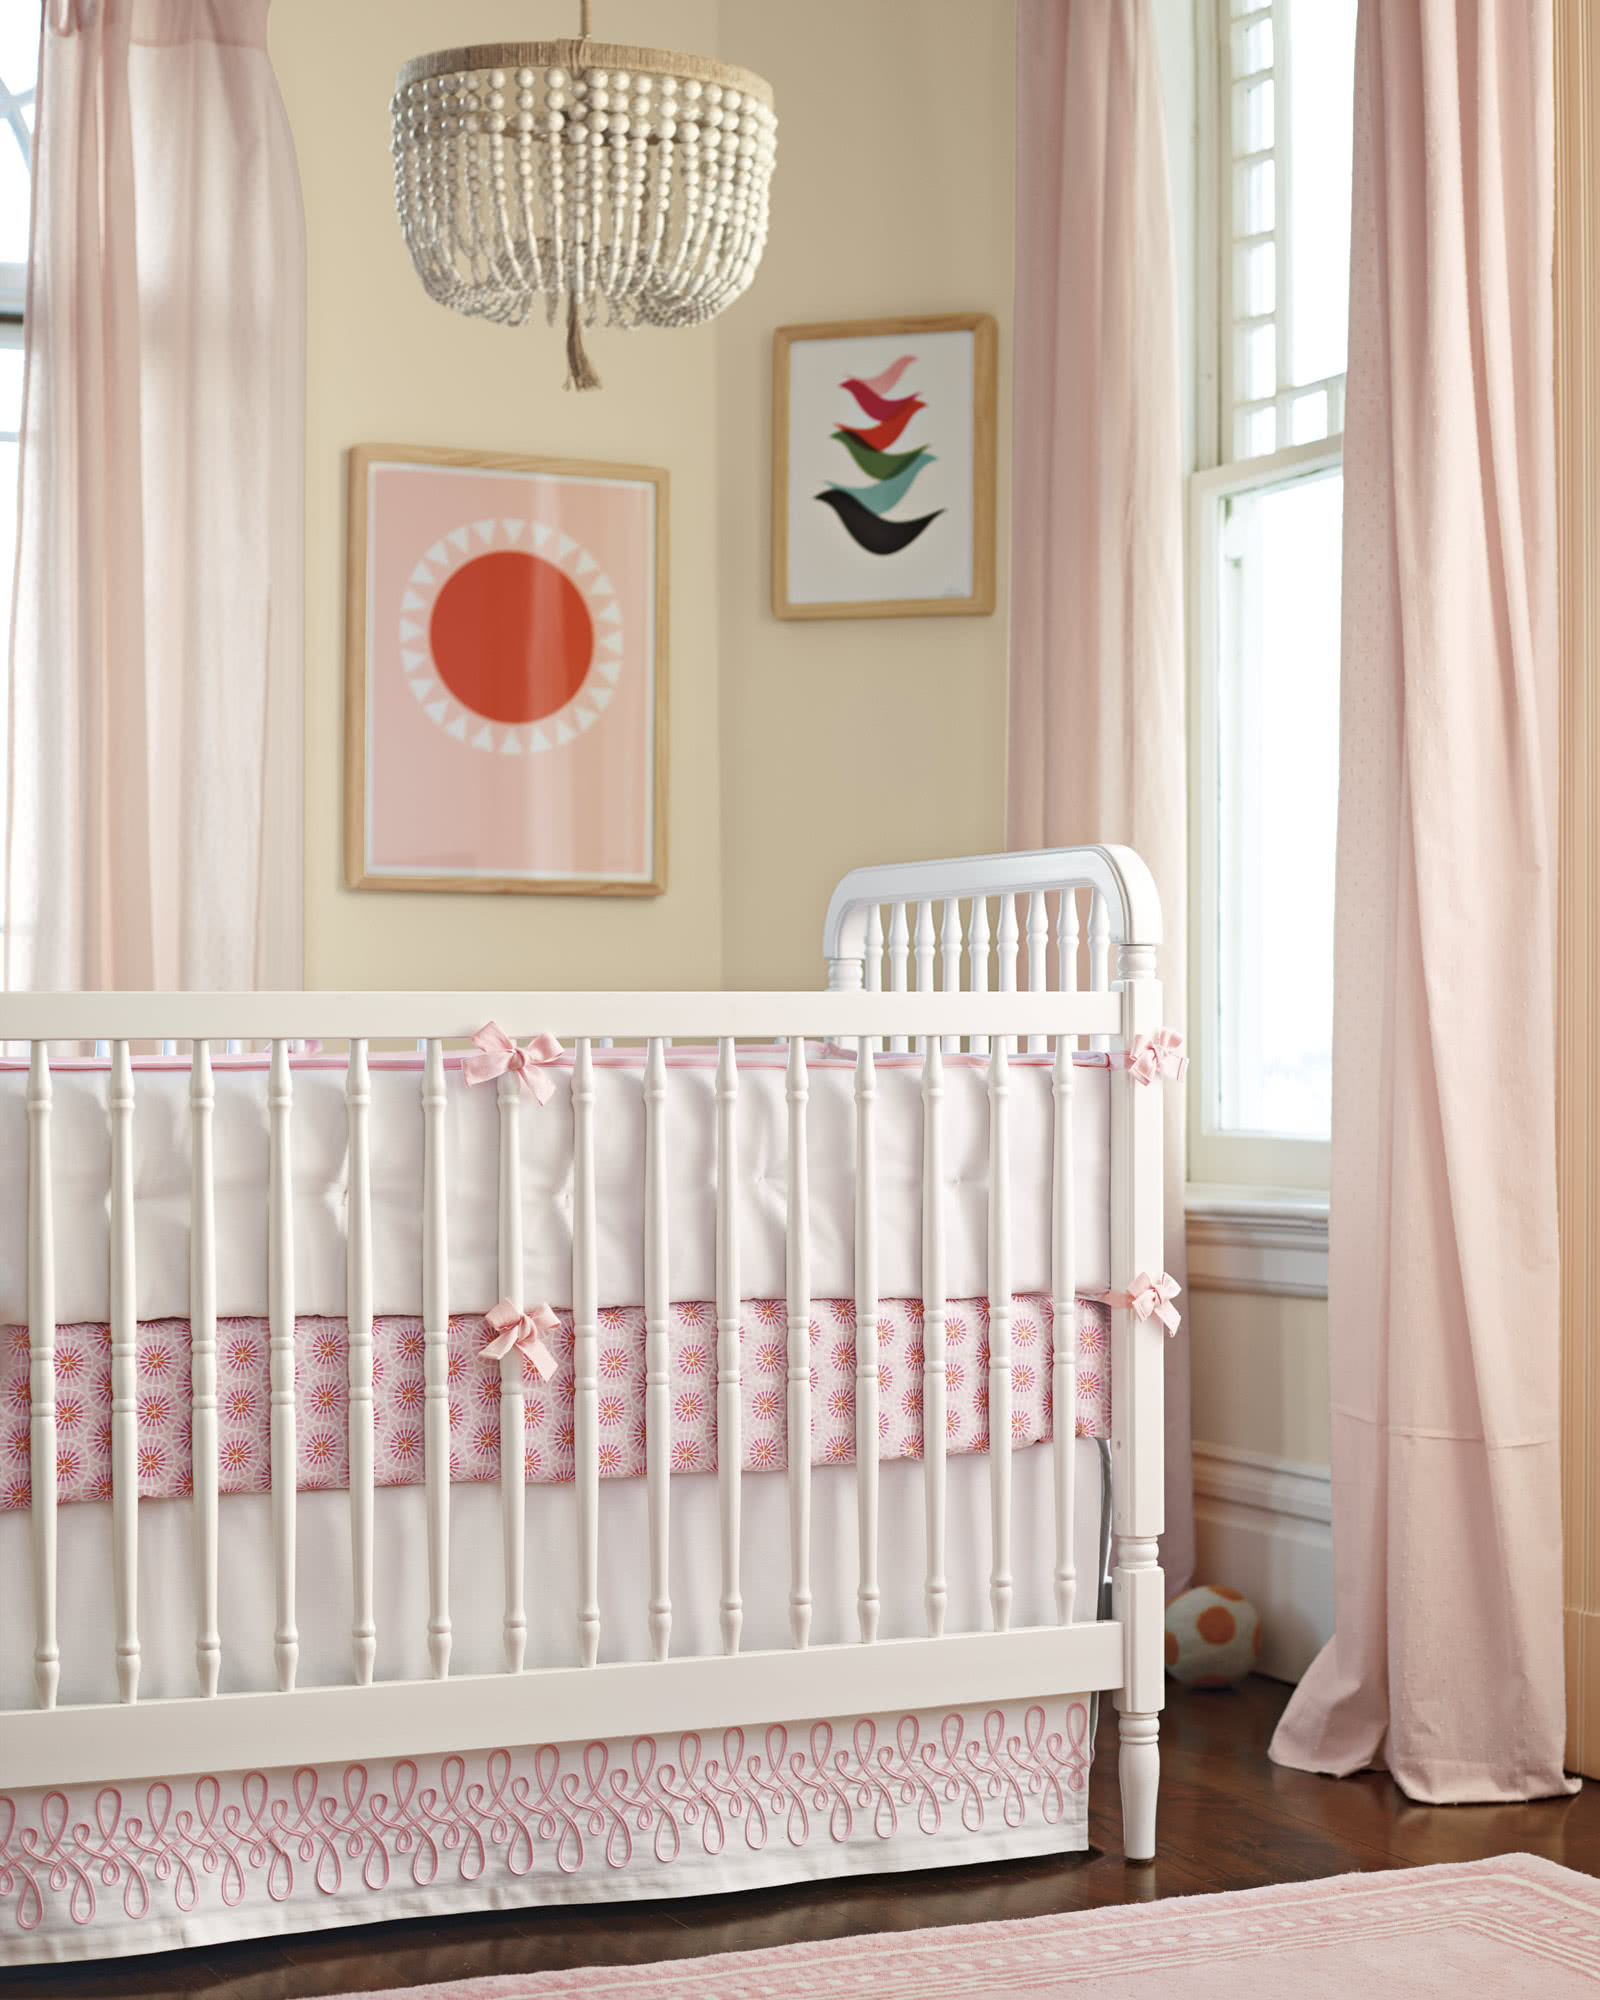 Starburst Crib Sheet